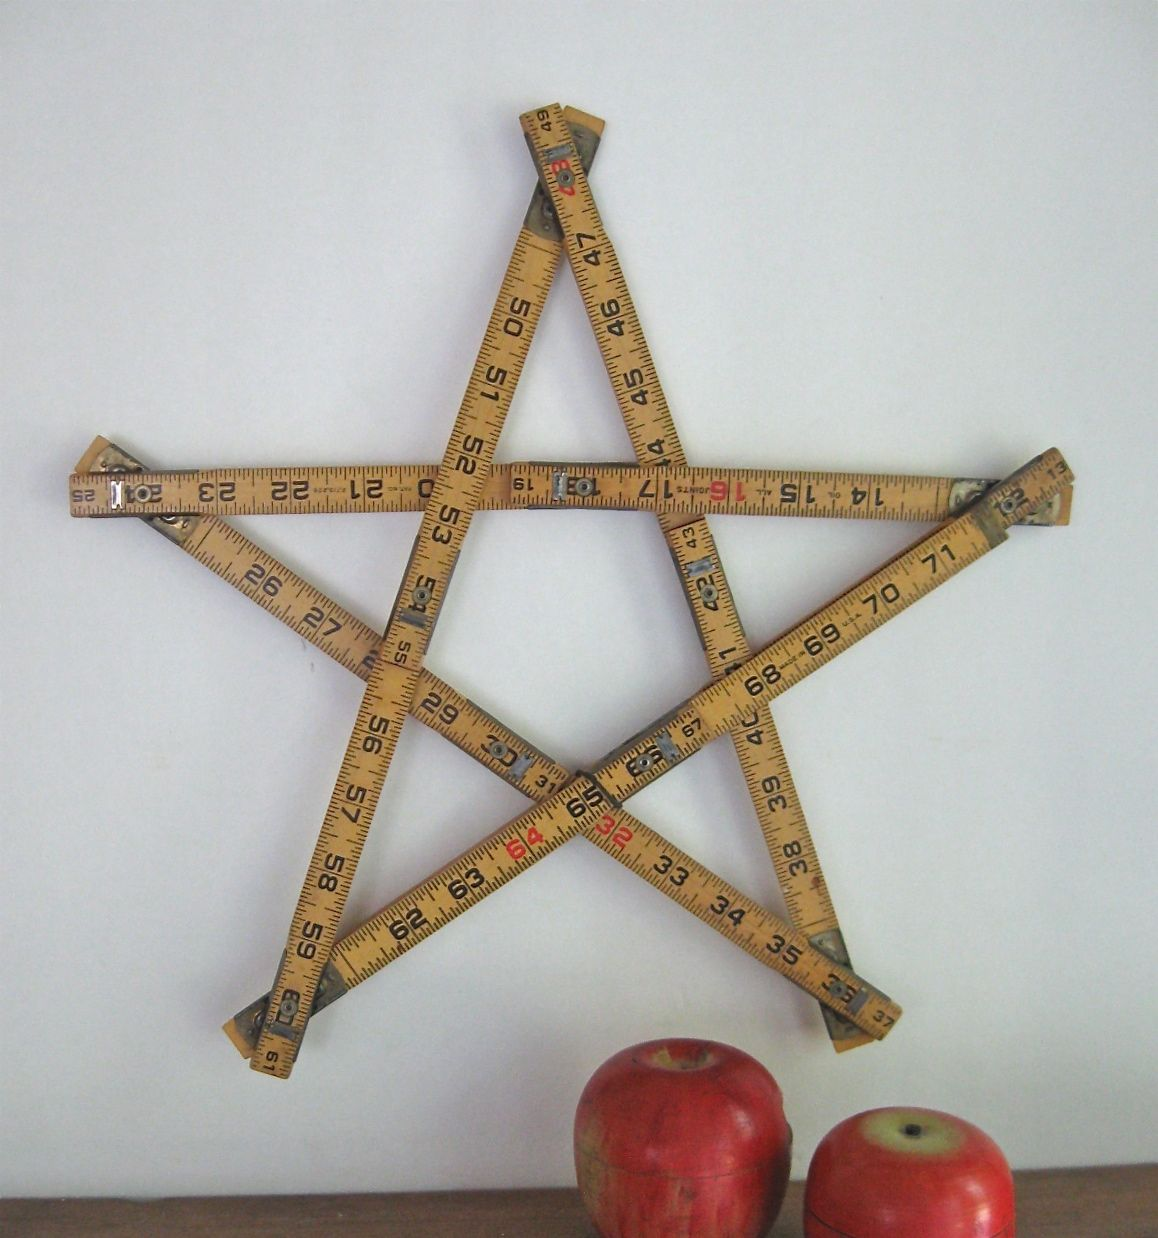 Love This Idea Of A Star Made Out Of A Folding Ruler! So Cute. | Things To  Make And Do | Pinterest | Star, Crafts And Yard Sticks